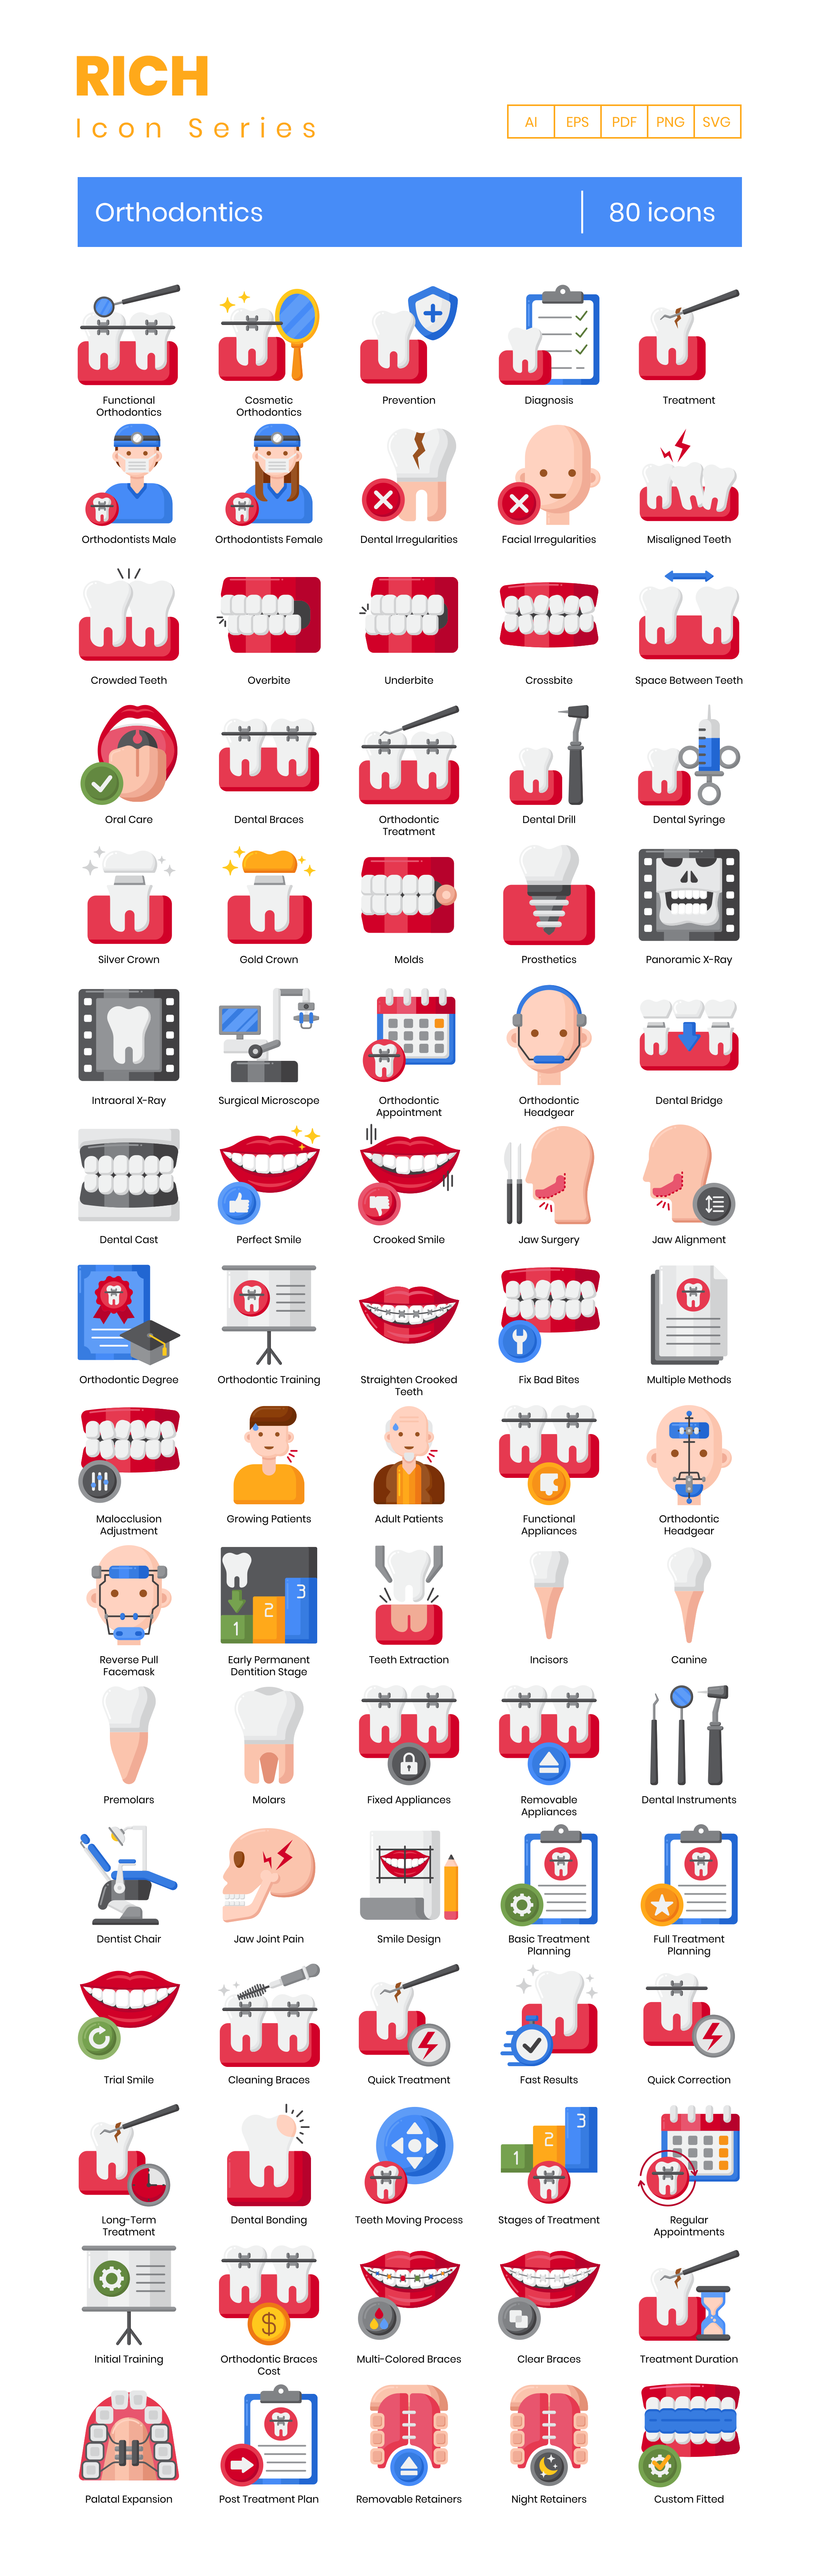 Orthodontics Vector Icons Preview Image